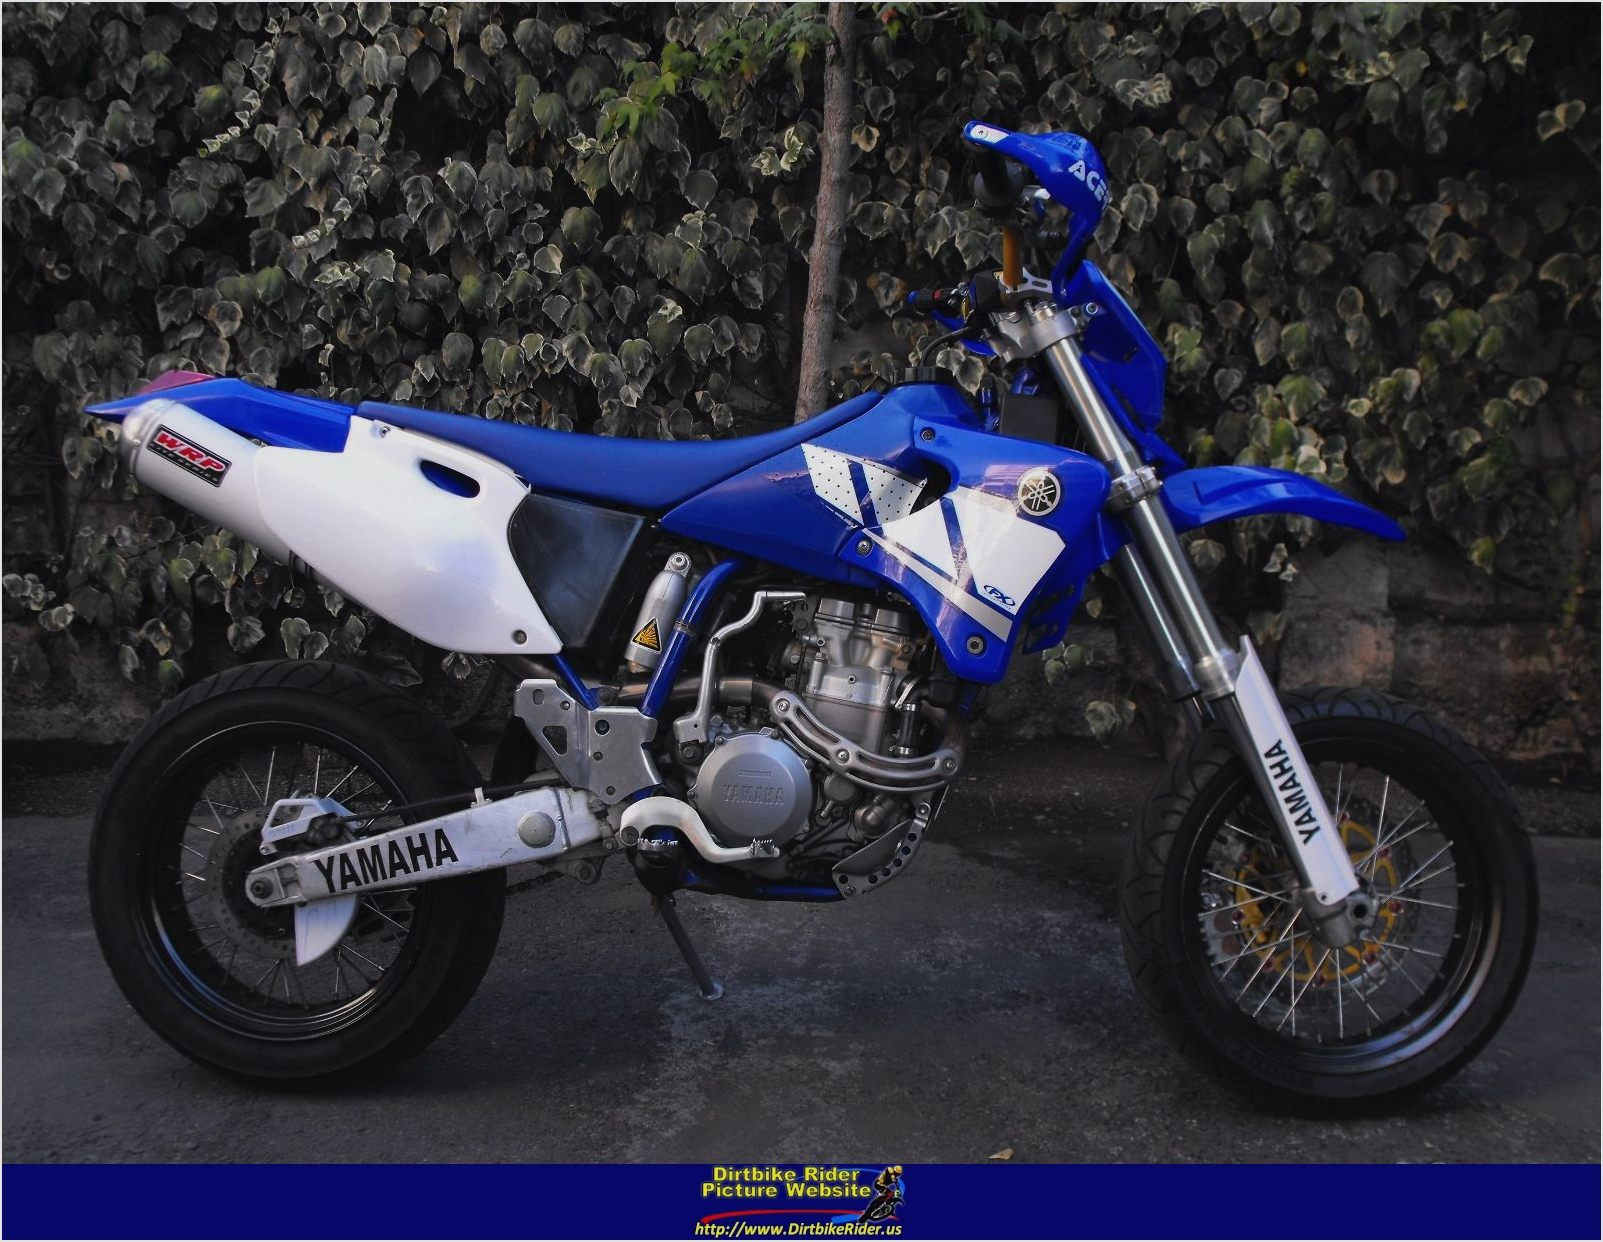 1999 yamaha wr 400 f pics specs and information. Black Bedroom Furniture Sets. Home Design Ideas